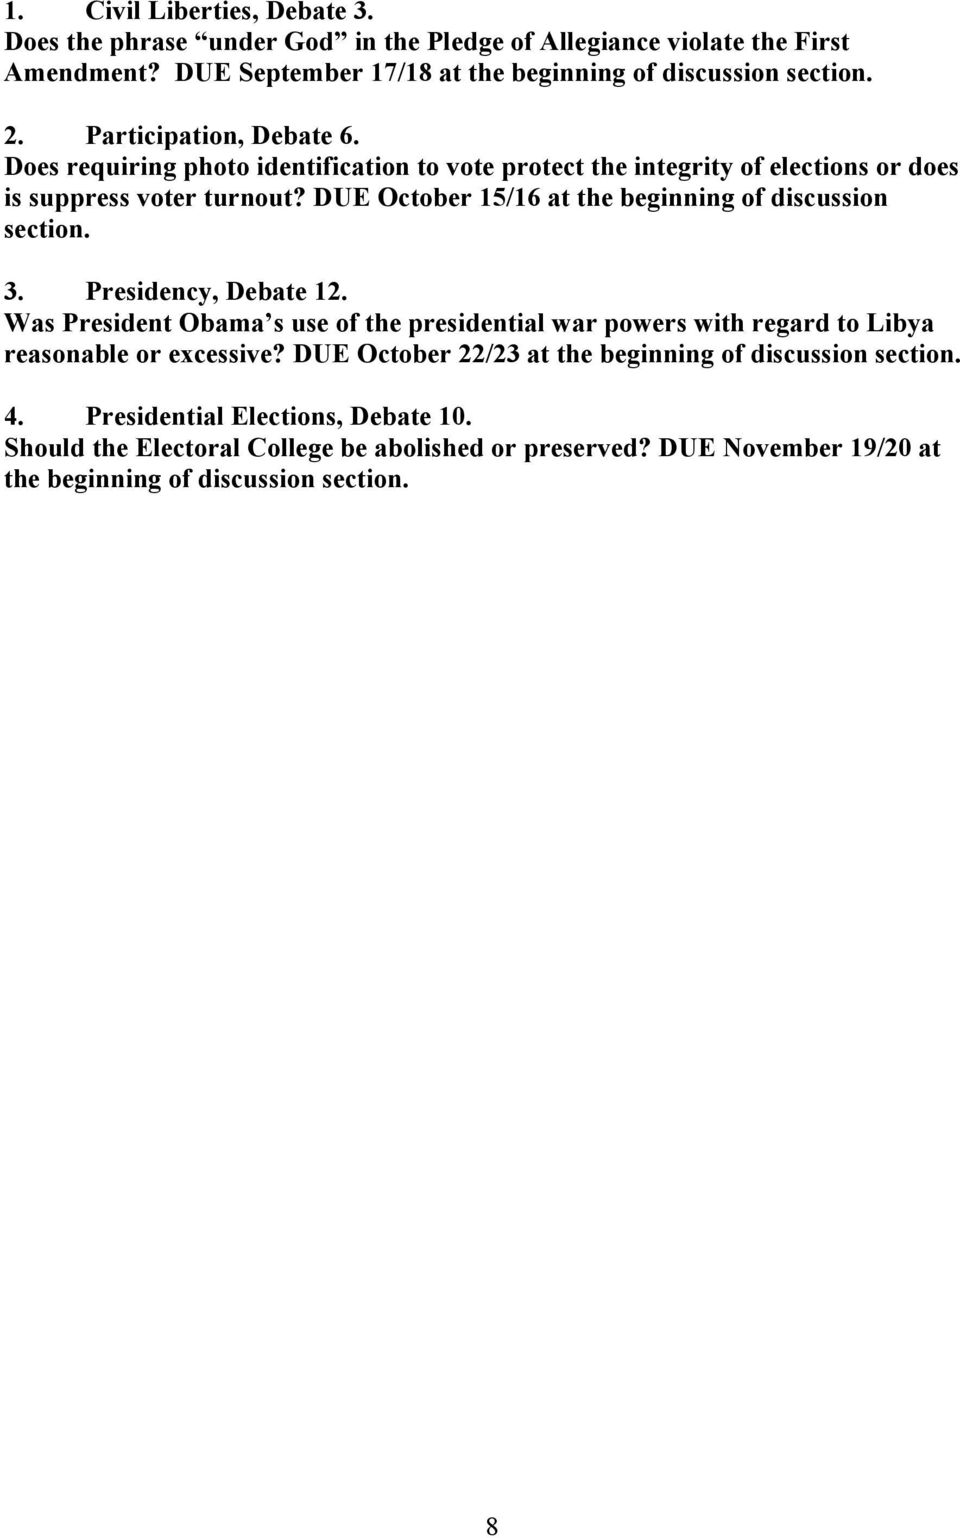 DUE October 15/16 at the beginning of discussion section. 3. Presidency, Debate 12.